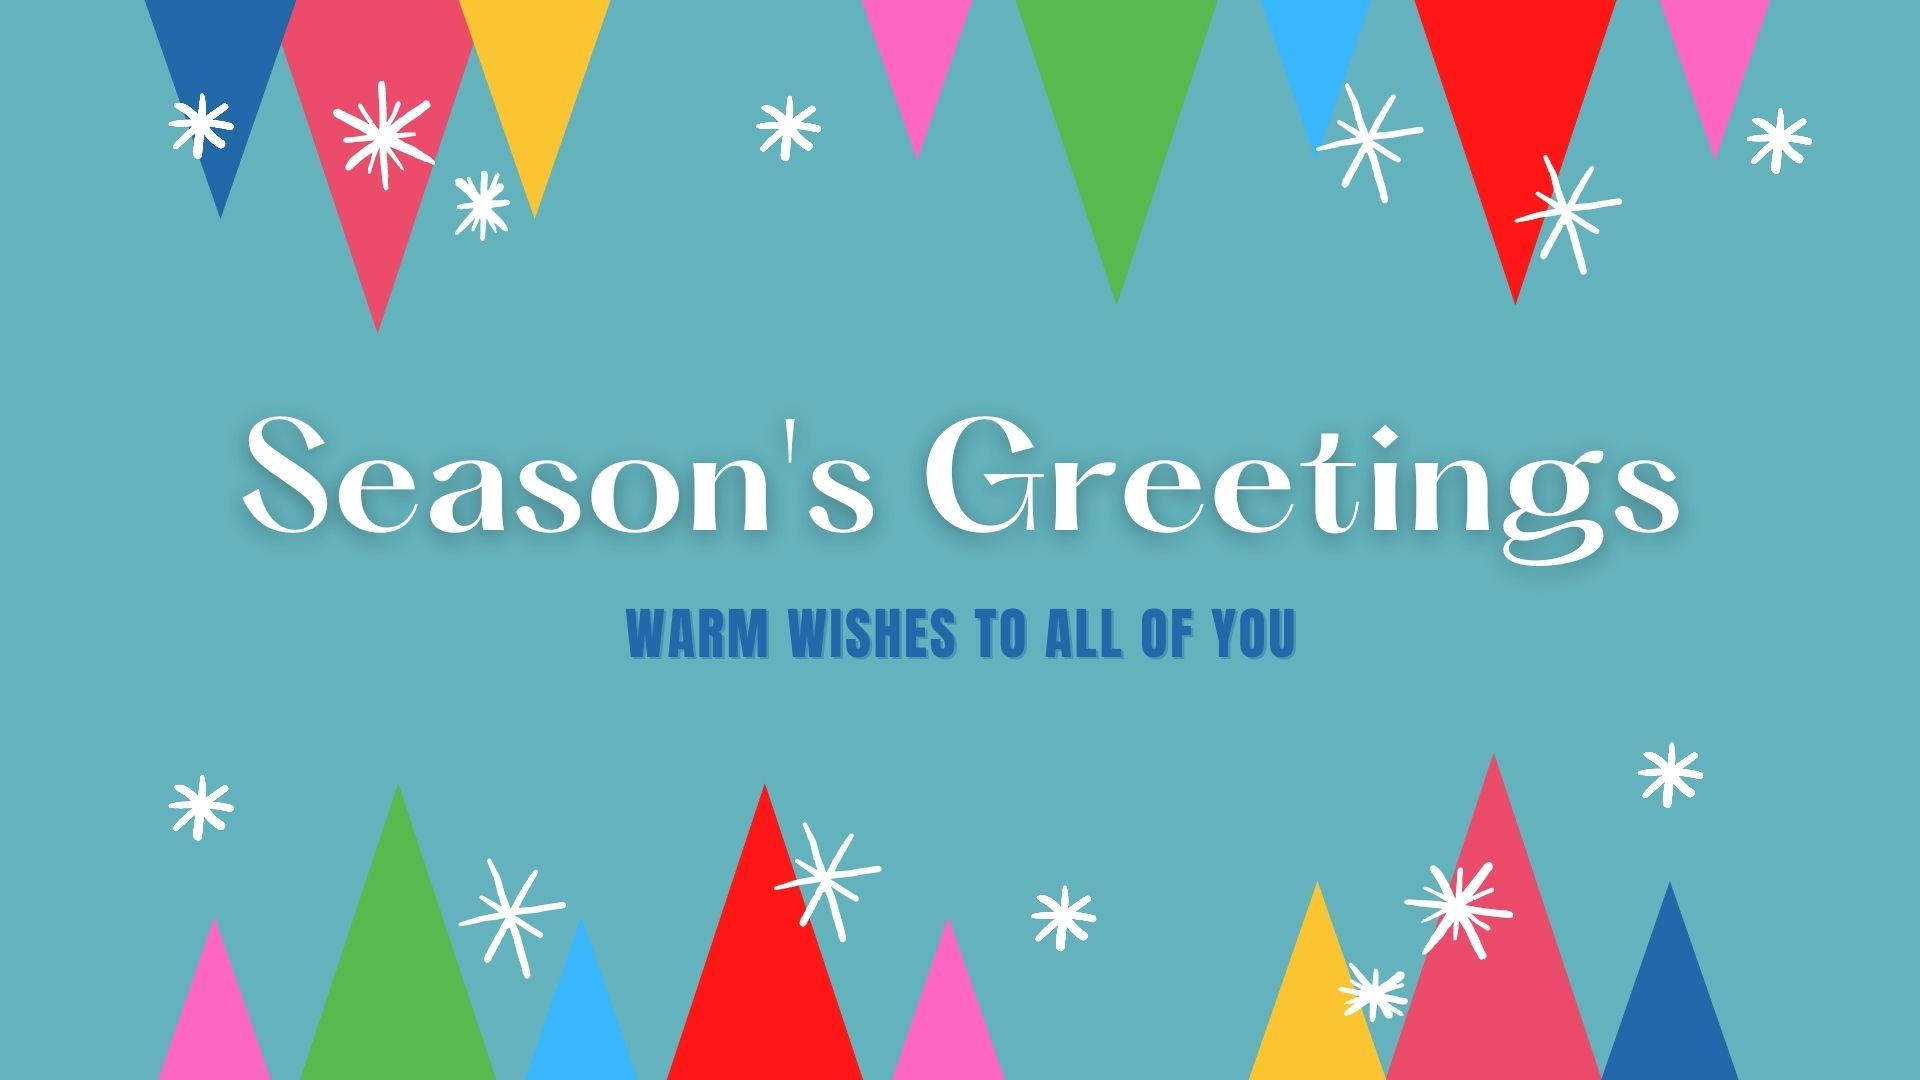 warm wishes to ALL OF yoU